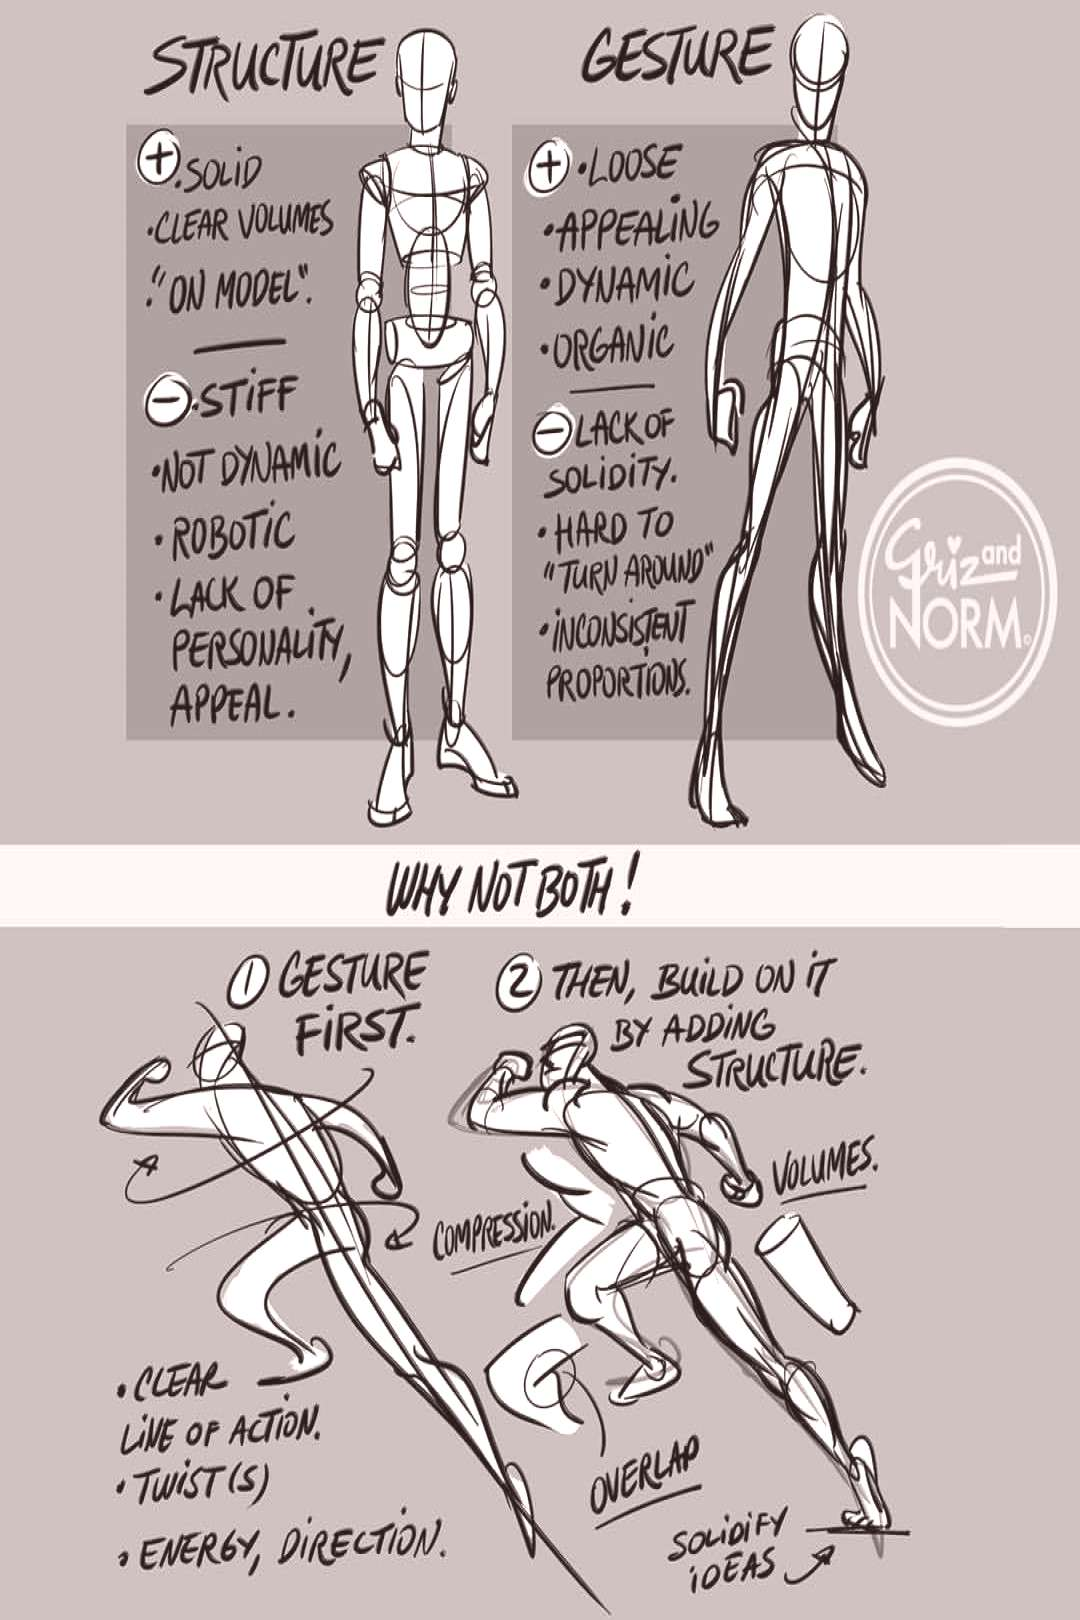 Tuesday Tips - Structure/Gesture Why Not Both! Probably one the most compelling issue to deal with